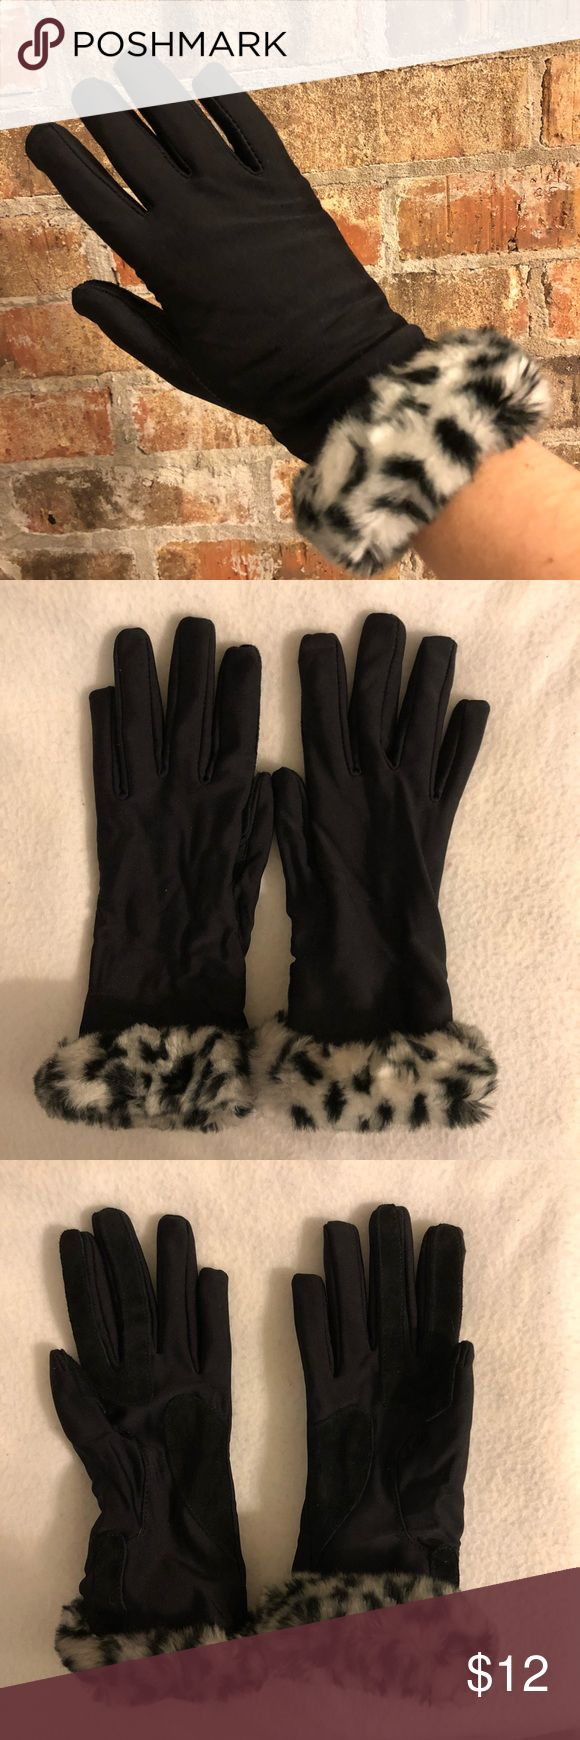 🎁 black faux fur gloves Black gloves with faux animal print fur. Leather-like pads on fingers/palms. Run small, no flaws Accessories Gloves & Mittens